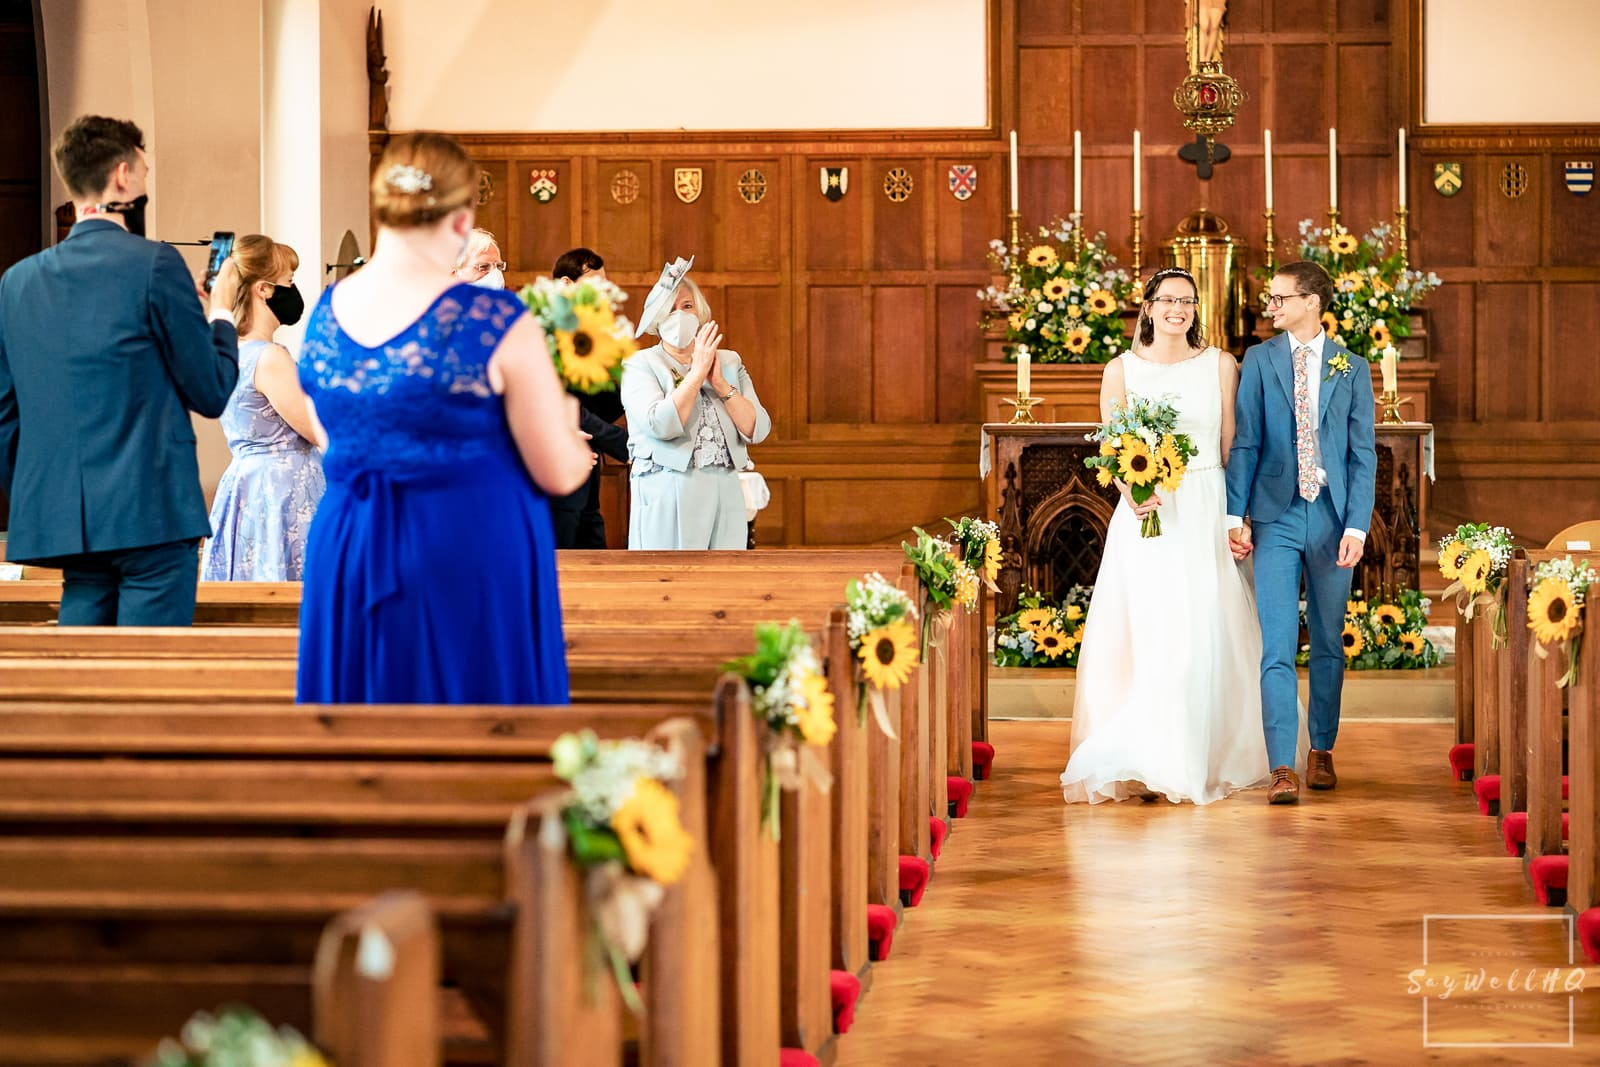 bride and groom walking down the aisle after getting married in a church wedding in Melbourne in Derbyshire